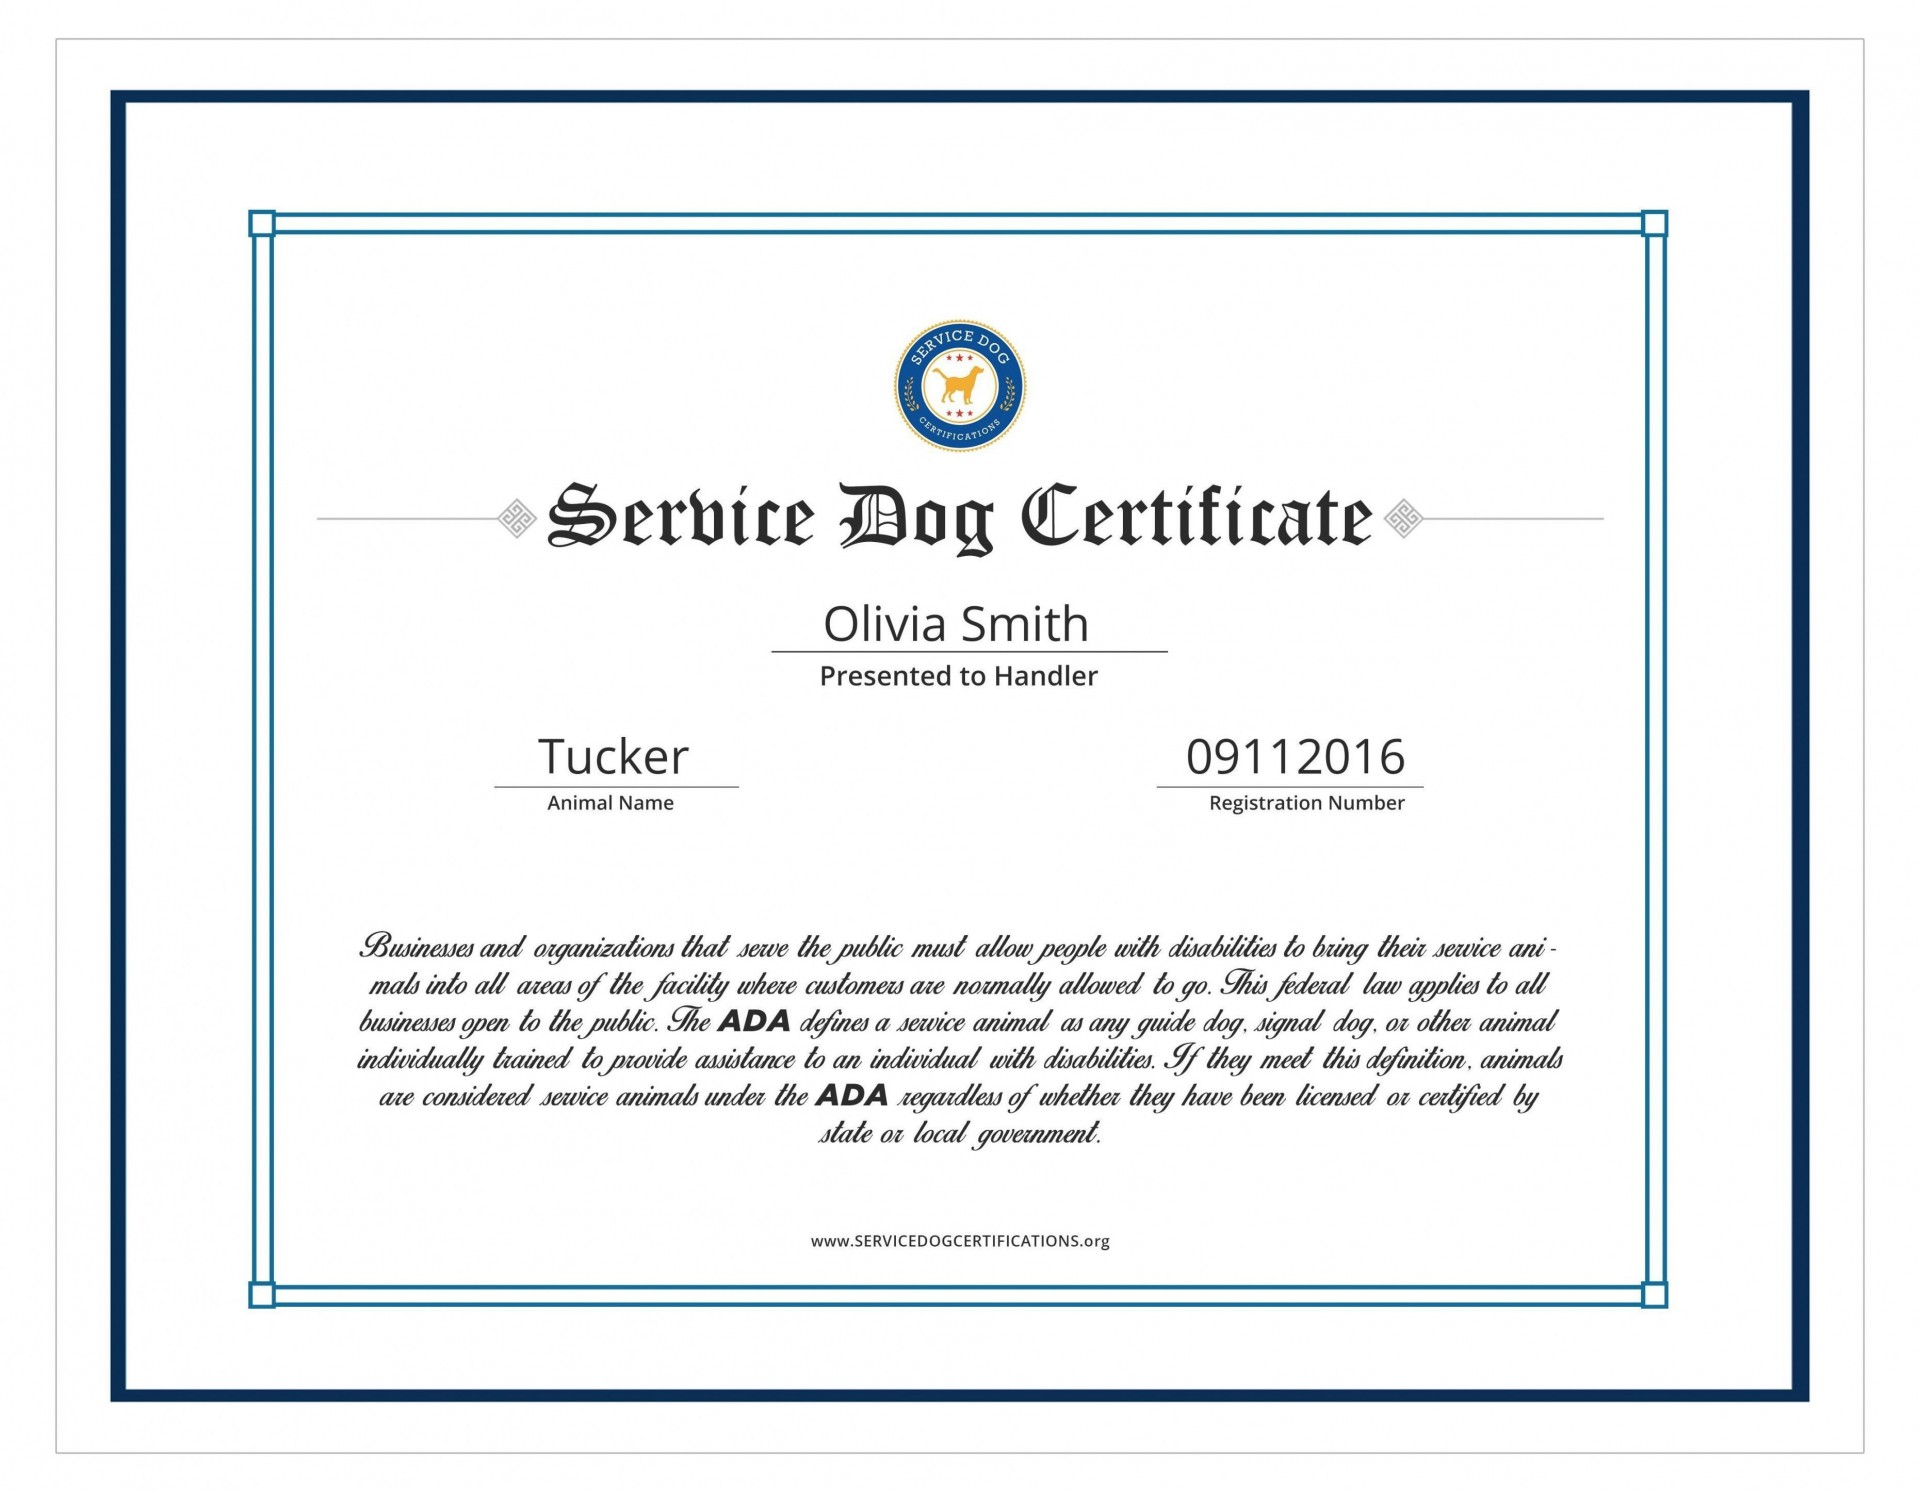 004 Amazing Service Dog Certificate Template Idea  Printable Id Free1920